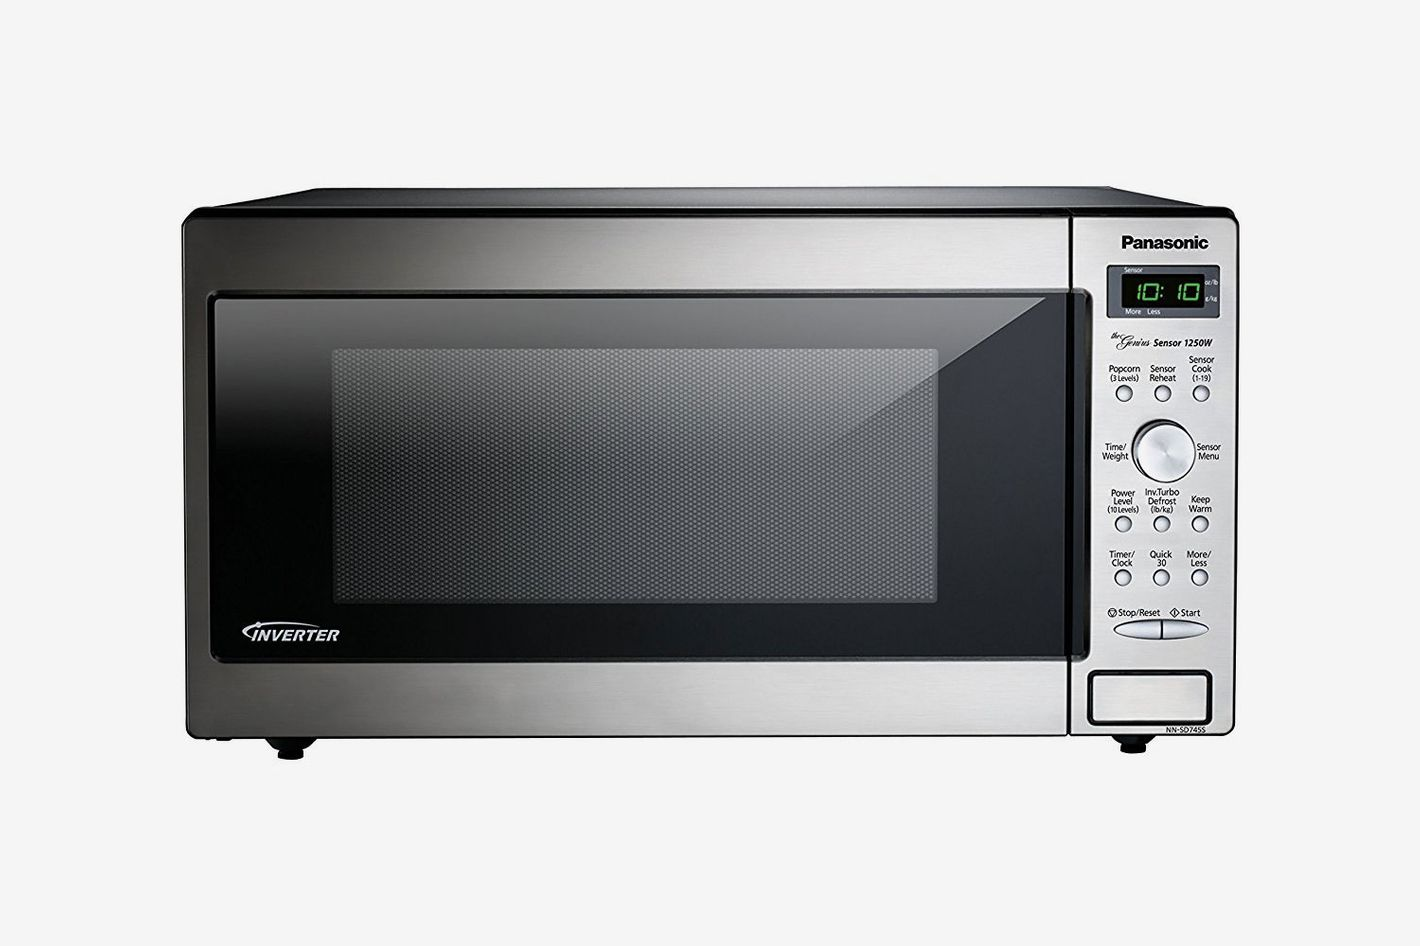 Panasonic Nn Sd745s Countertop Built In Microwave With Inverter Technology